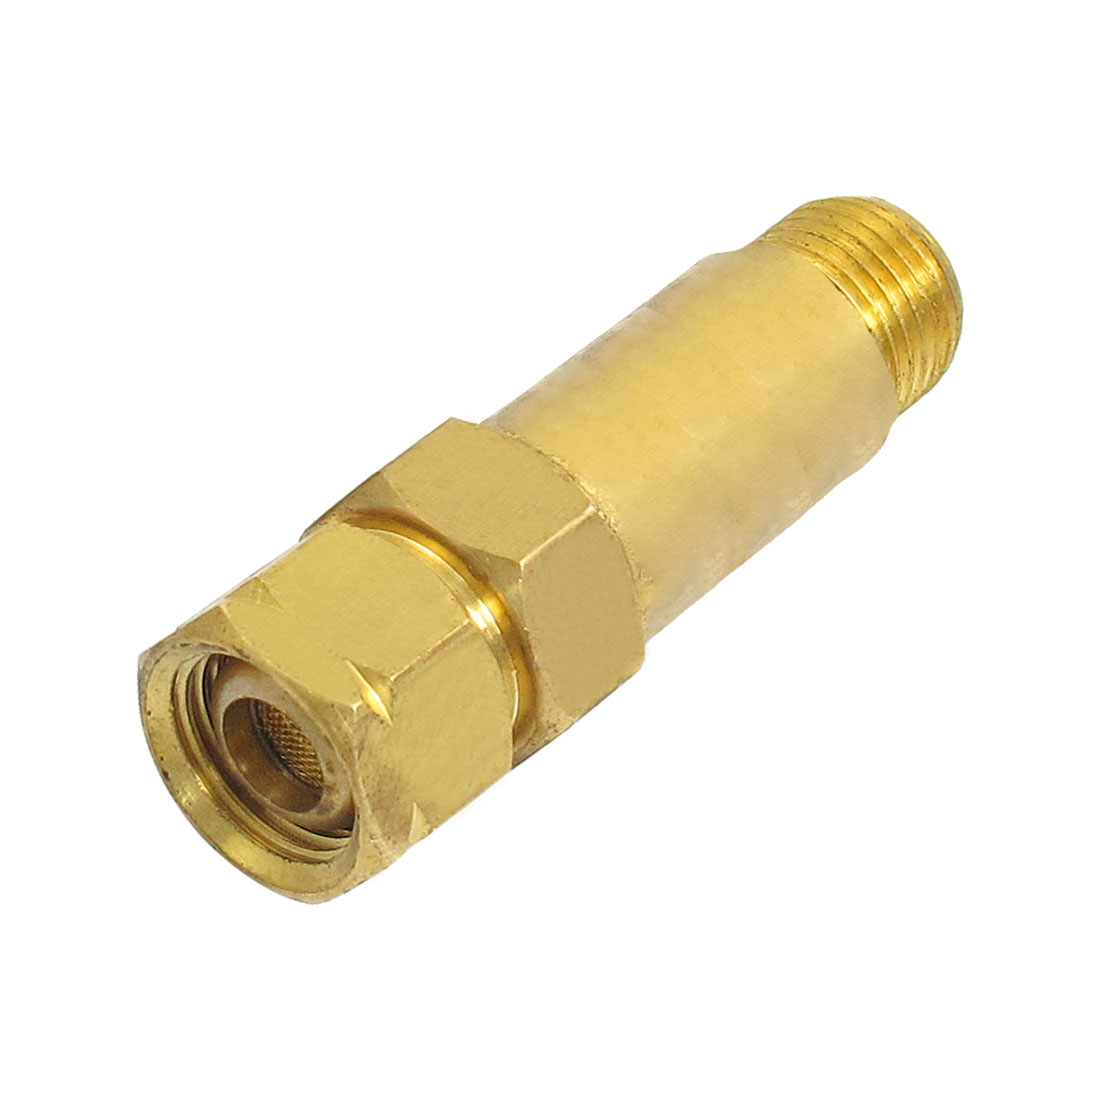 16mm Thread Diameter Dry Flashback Arrestor Acetylene Gas Check Valve